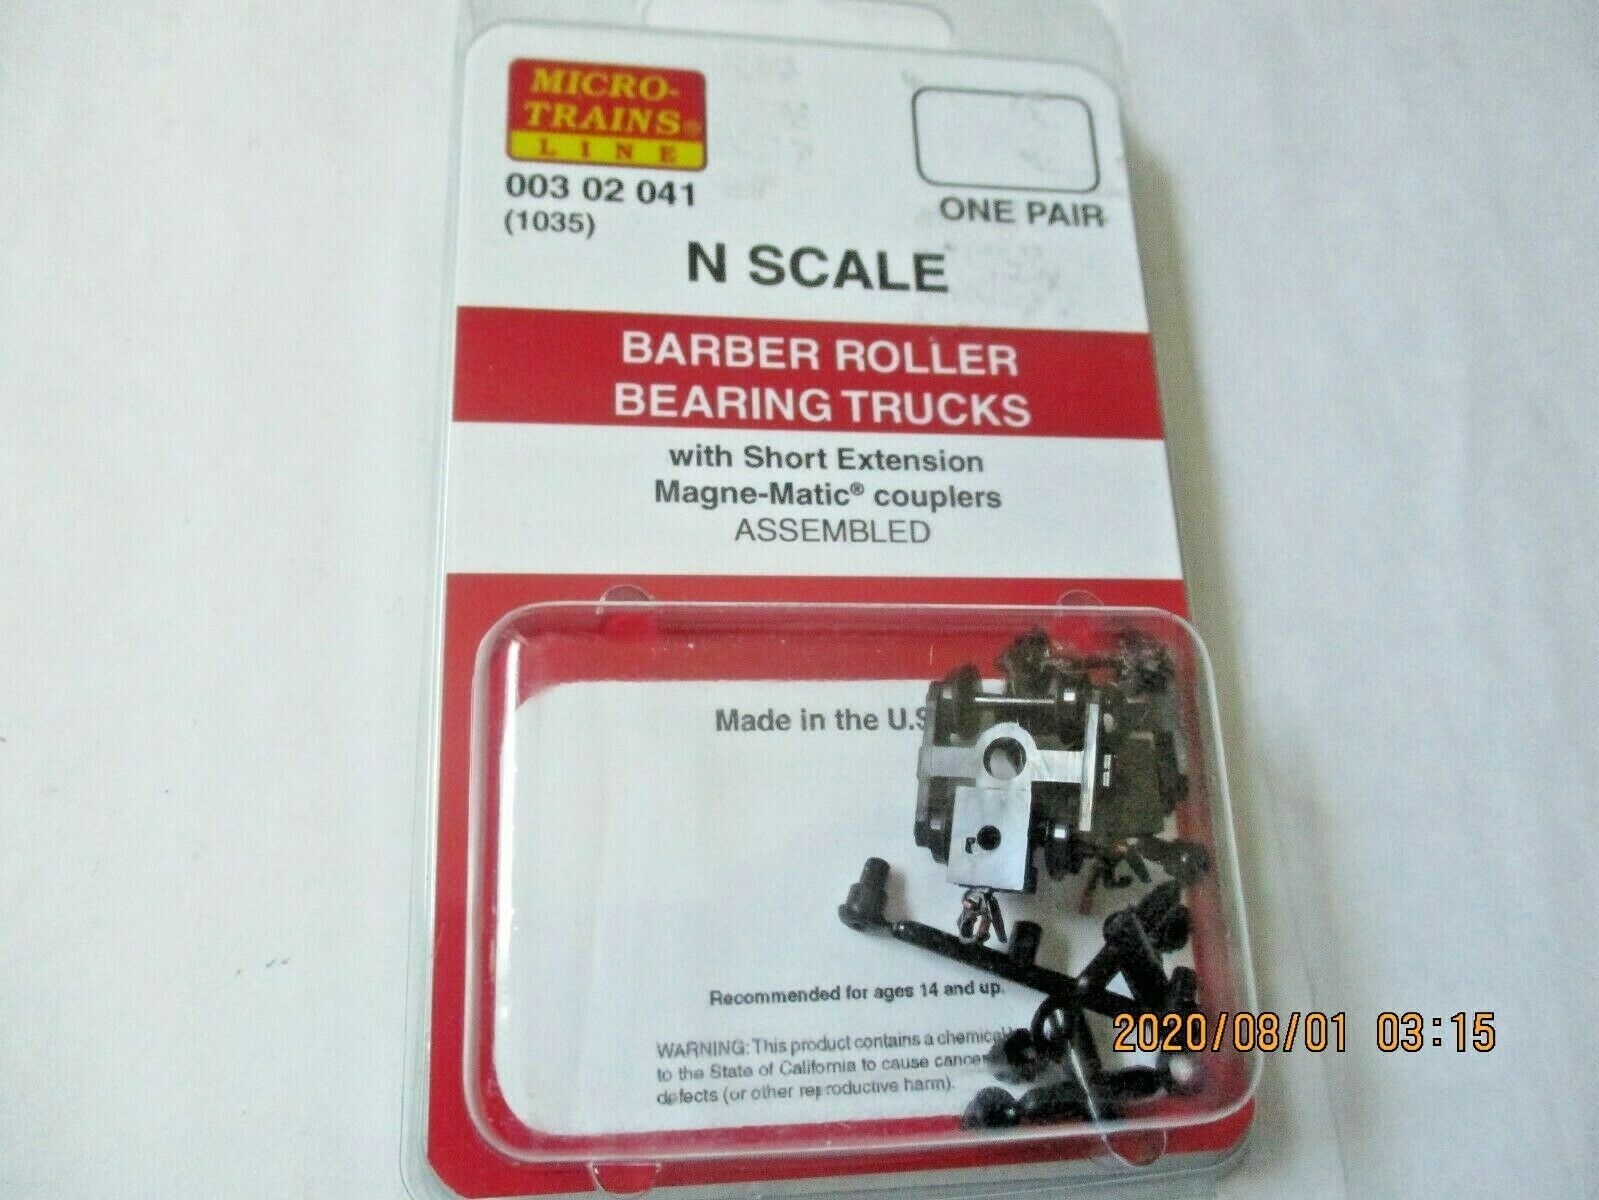 Micro-Trains Stock # 00302041 (1035) Barber Roller Bearing Truck Short Extension